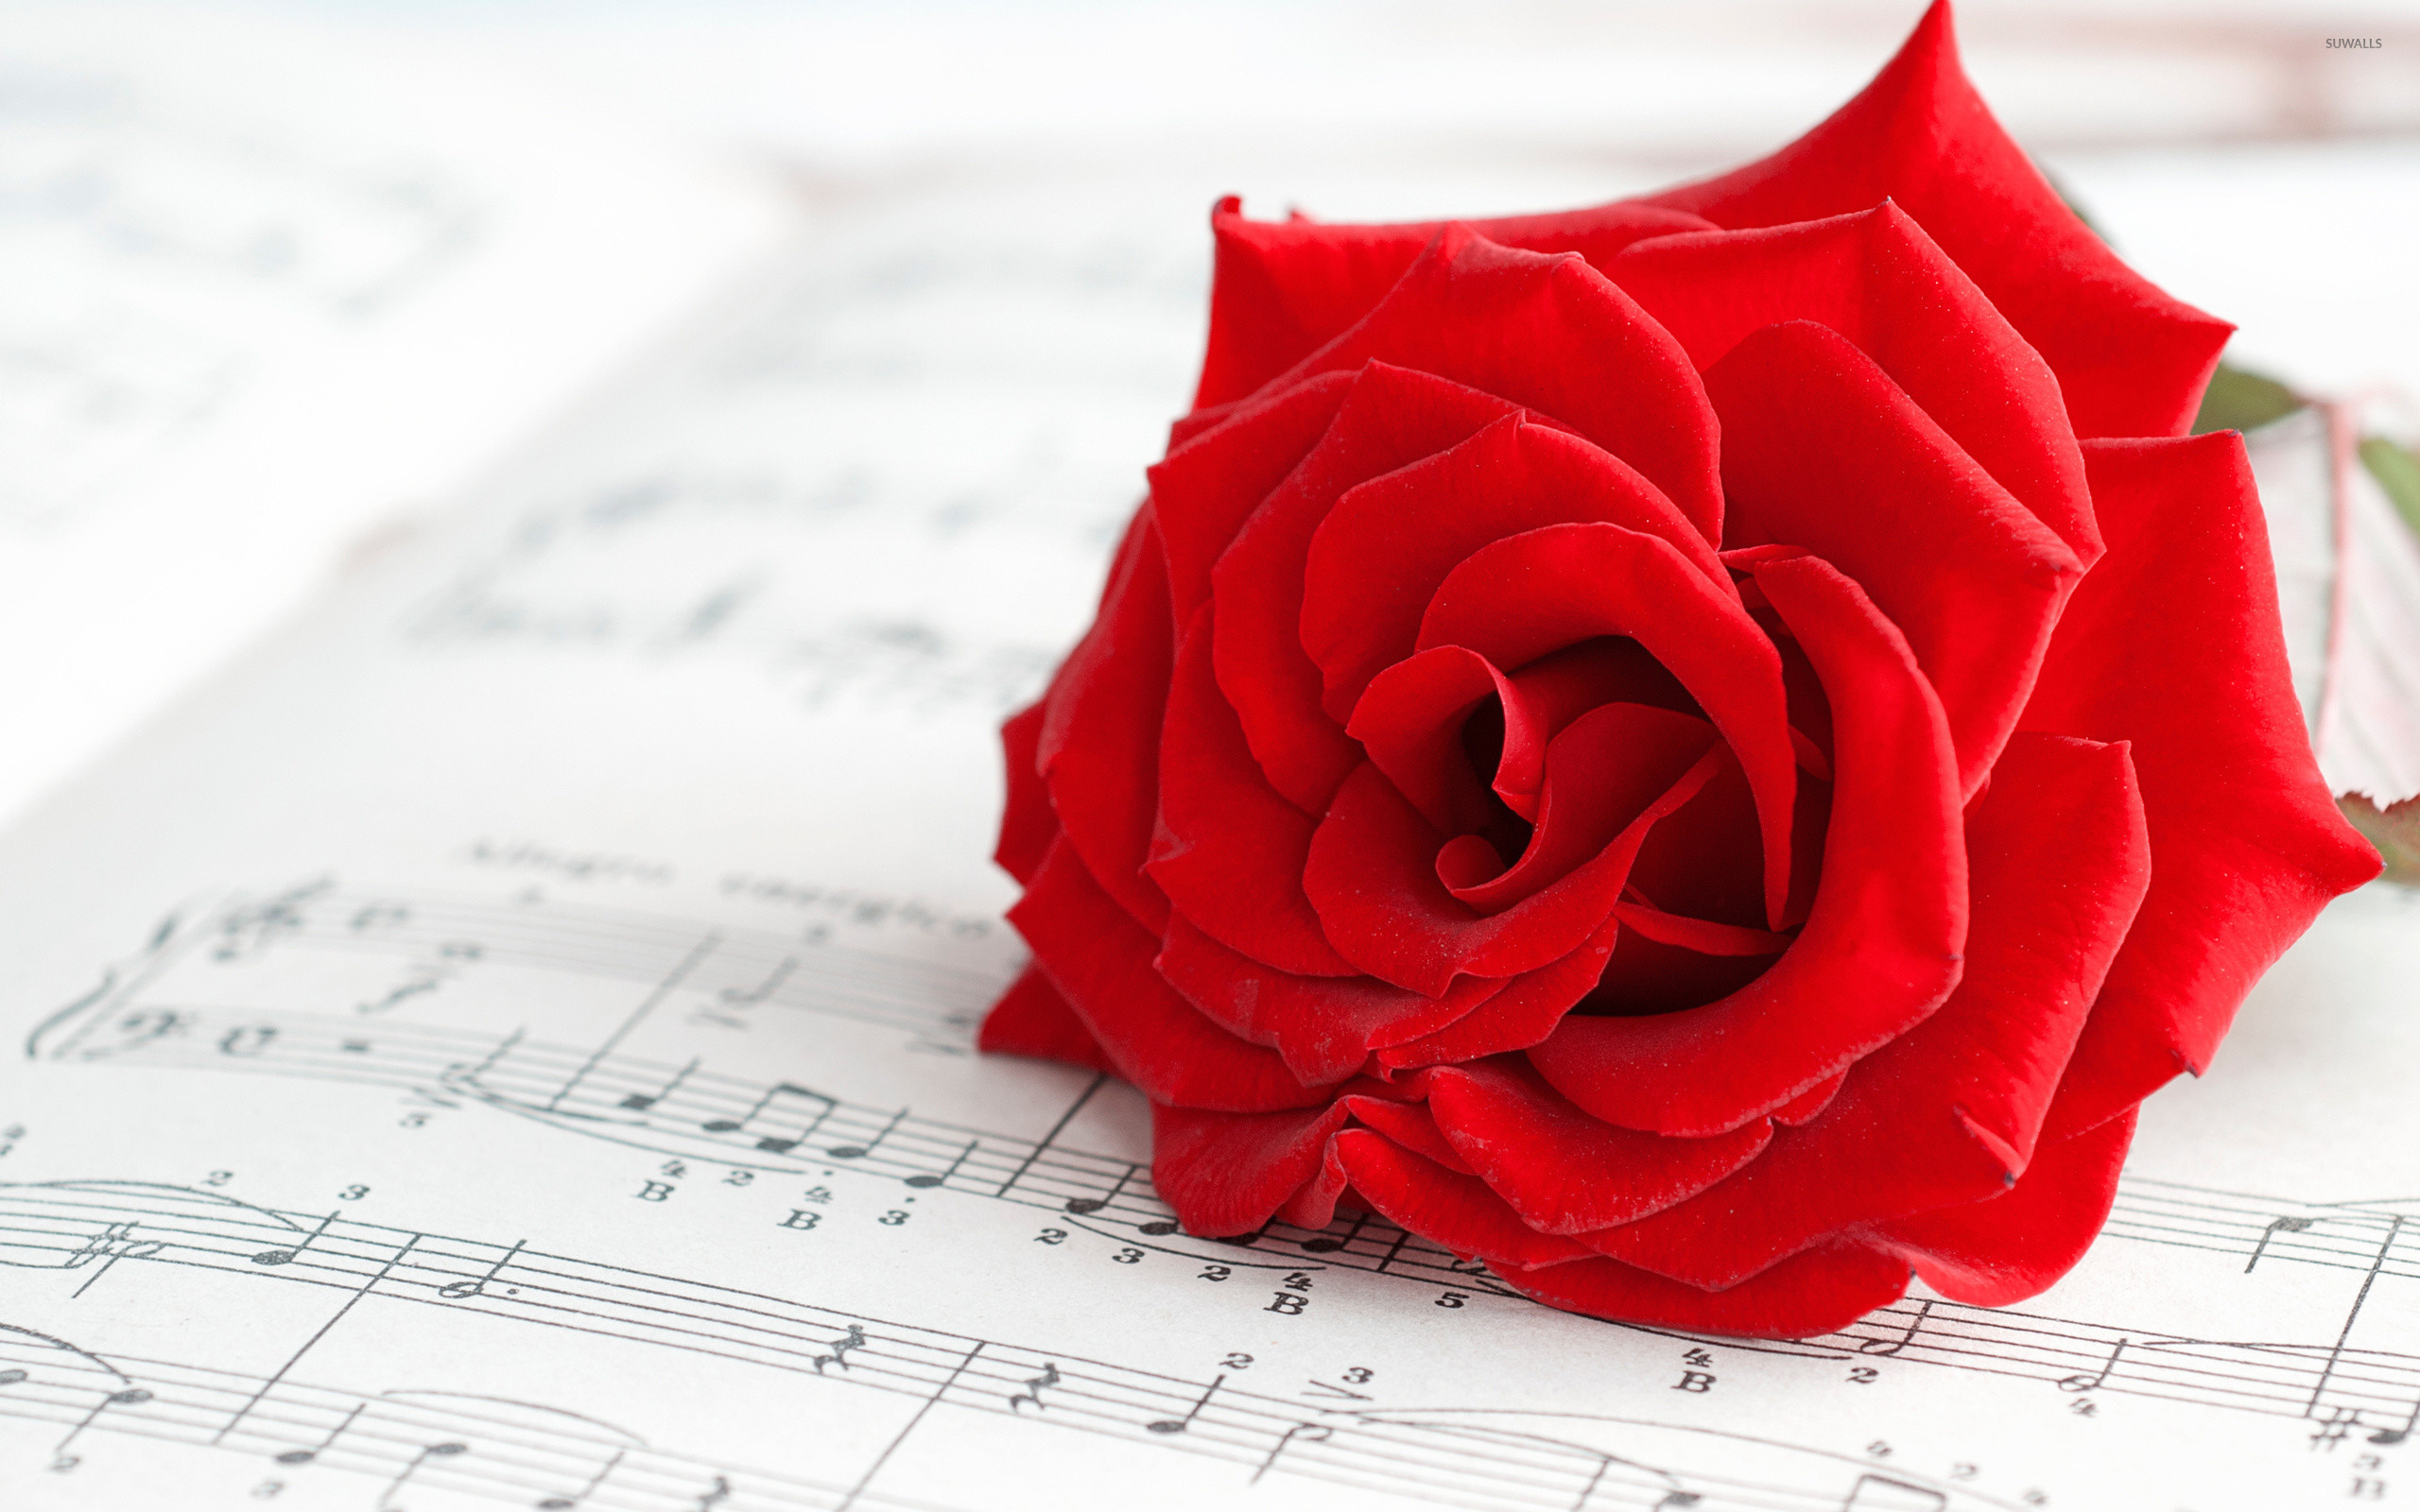 Pure red rose wallpaper